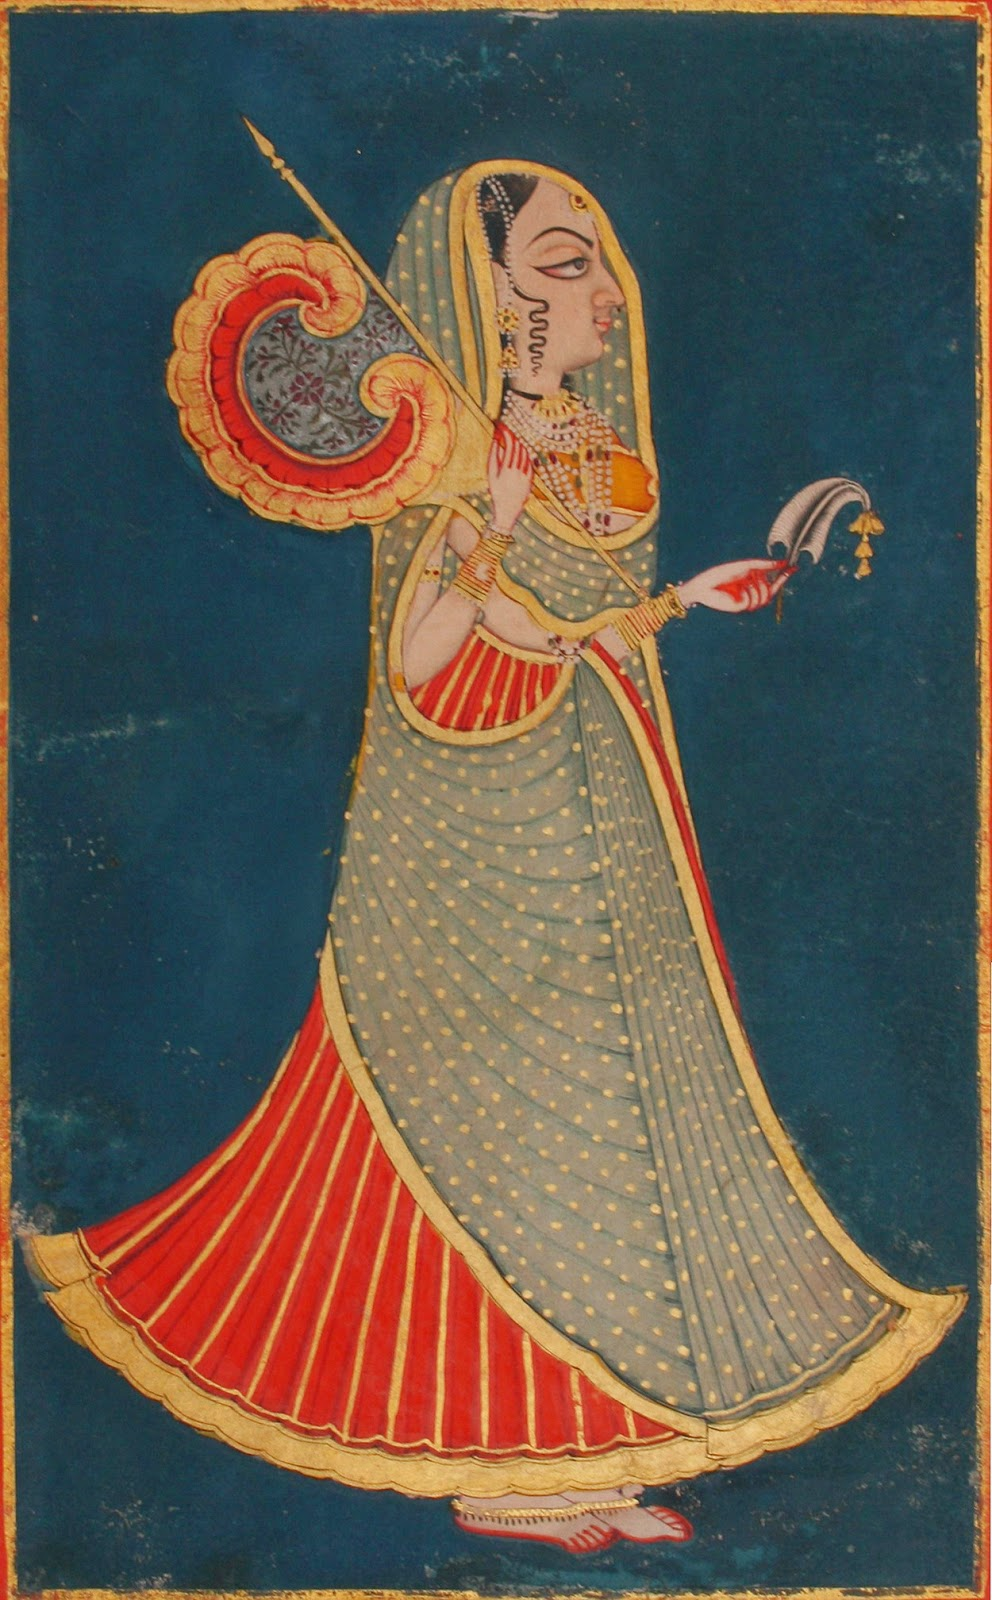 Jodhpur princess with fan and royal pankha and sarpech (fan and turban ornament) - Jodhpur, Rajasthan, c1820-40